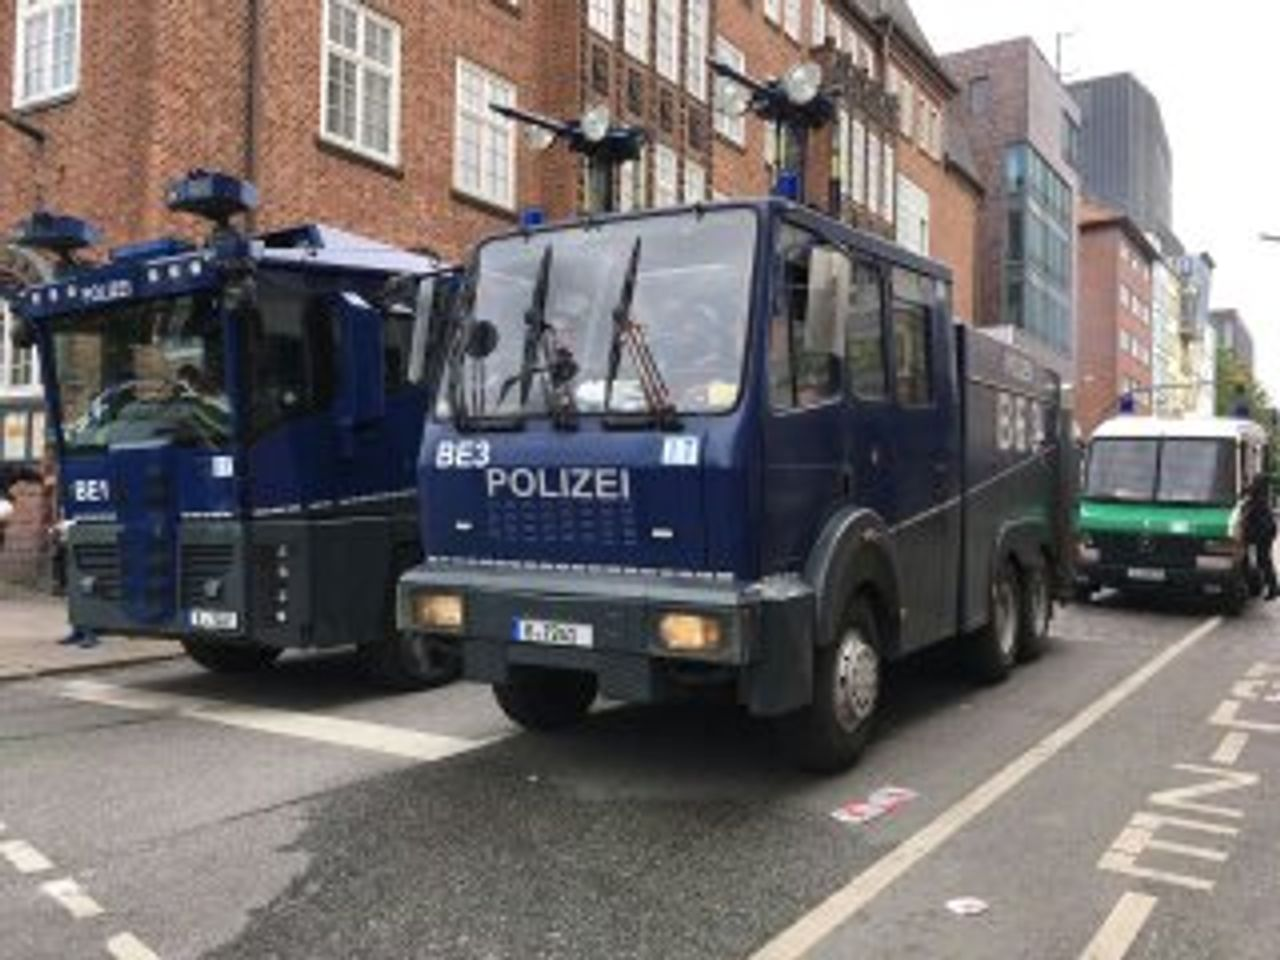 Police water cannons